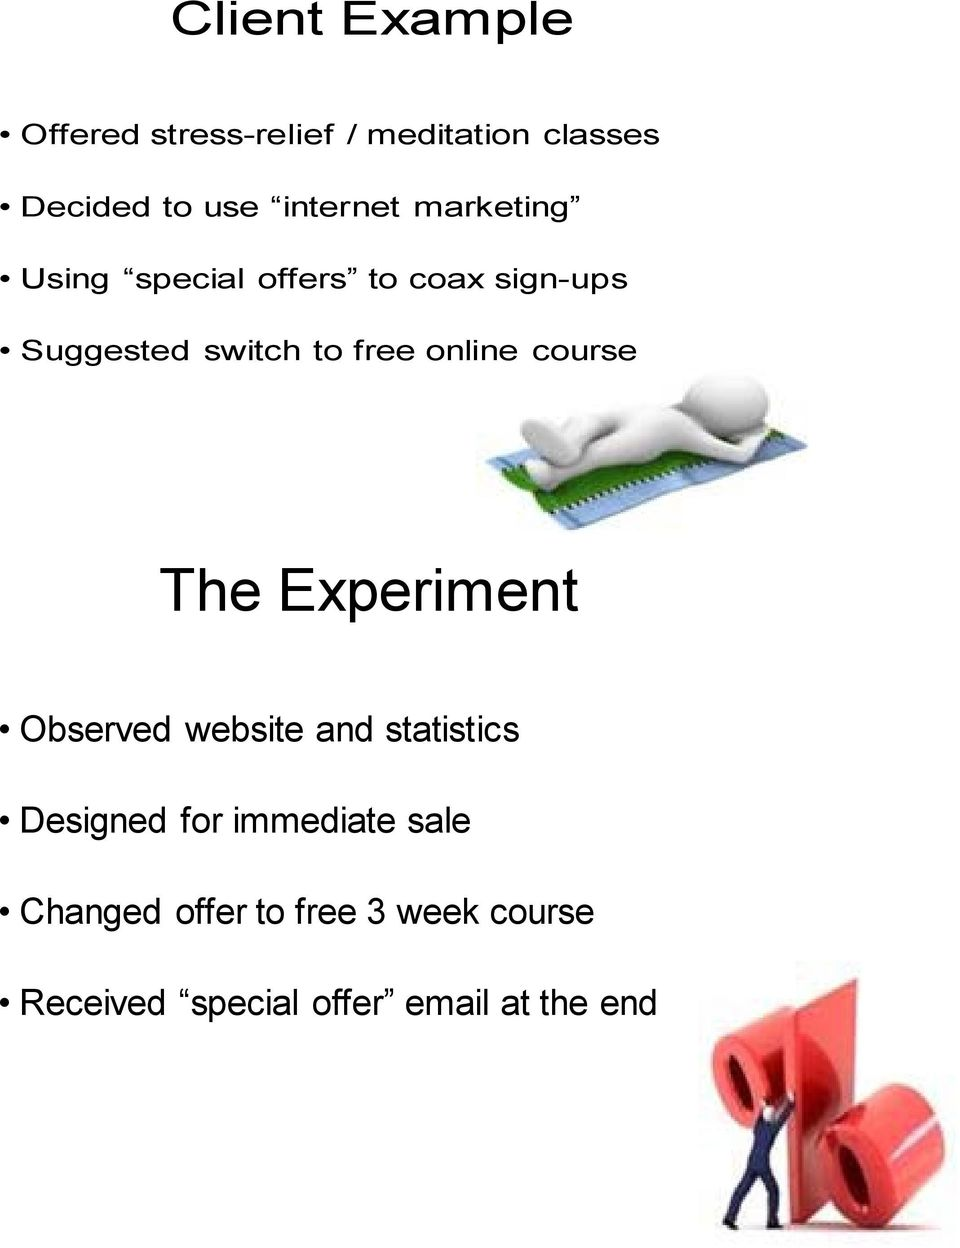 free online course The Experiment Observed website and statistics Designed for